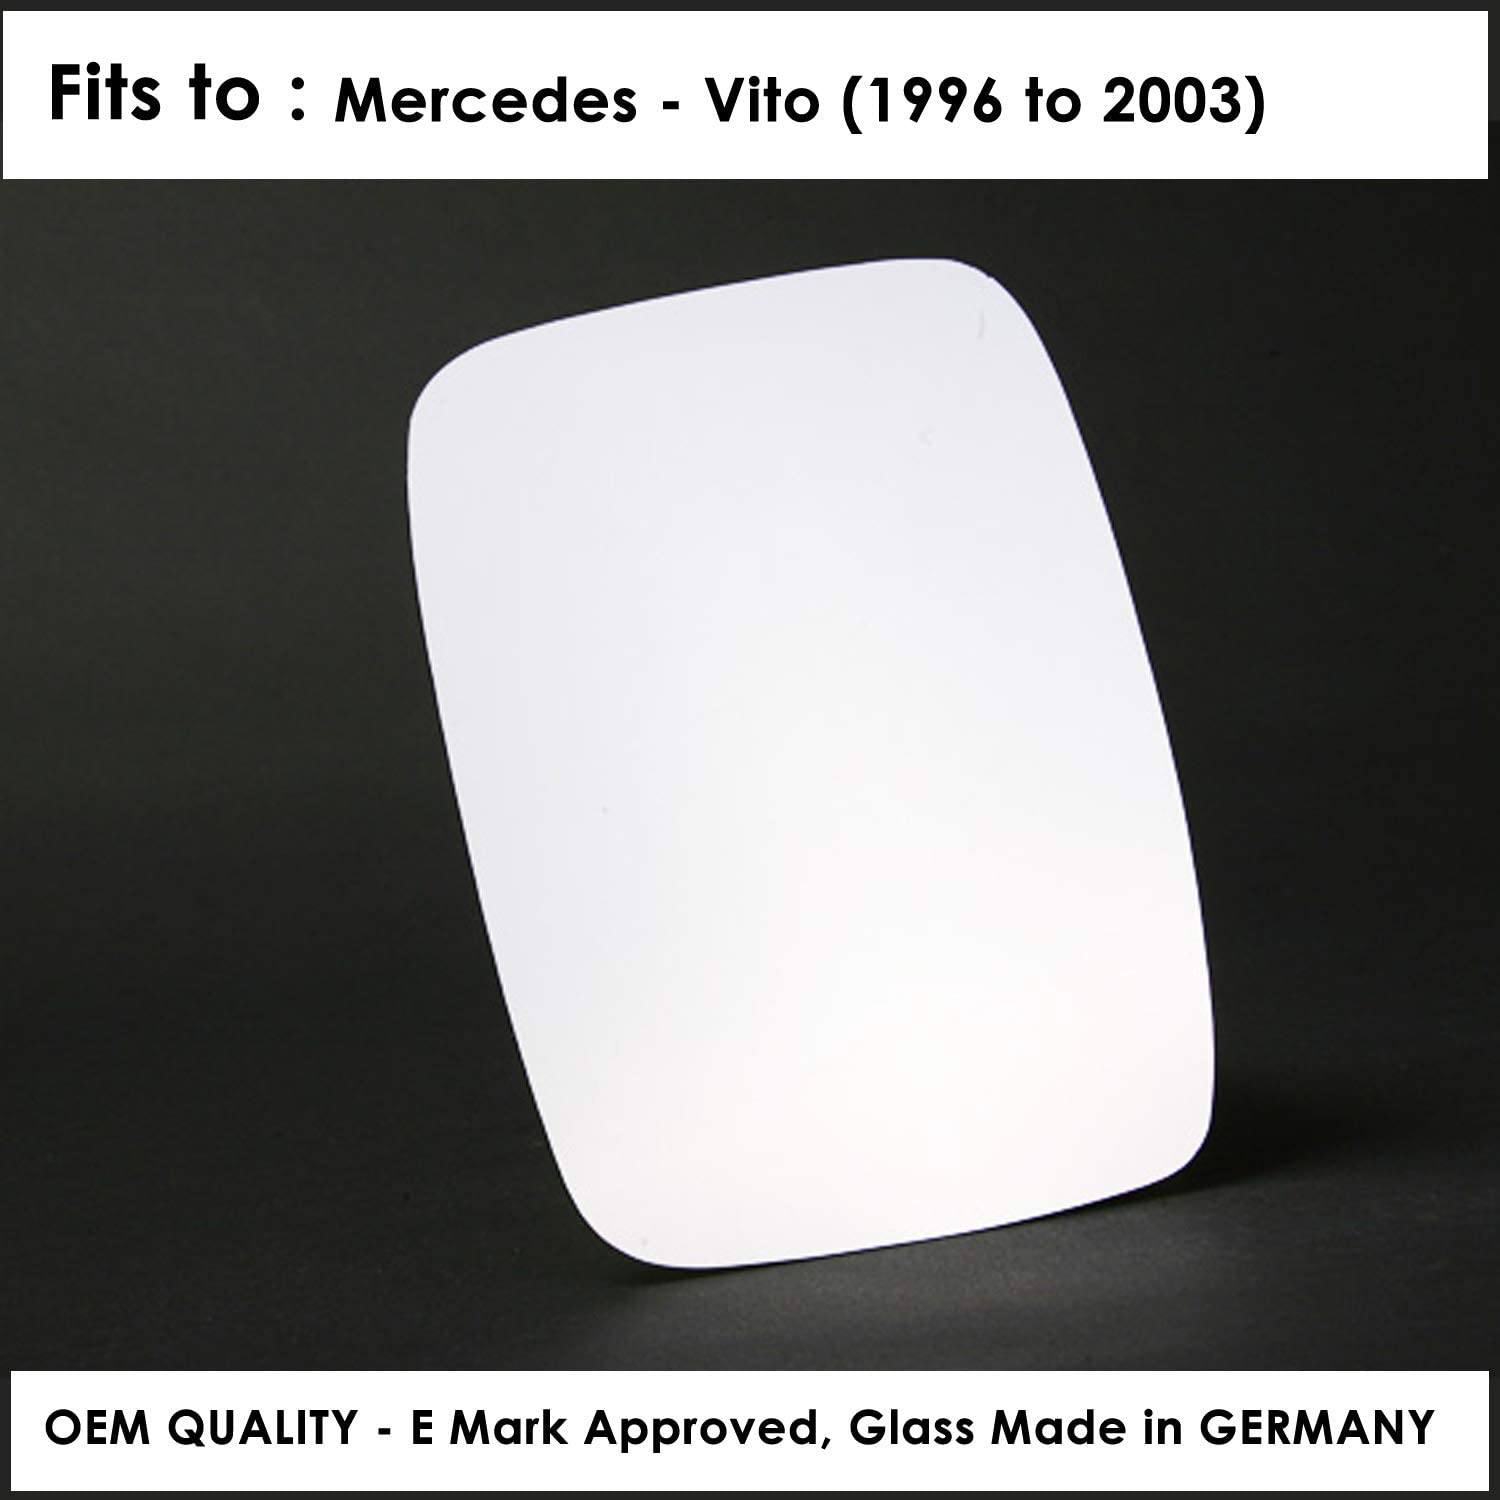 Year 1996 To 2003 W638 Right Hand Side Door Mirror Glass Convex For MERSD-Vito